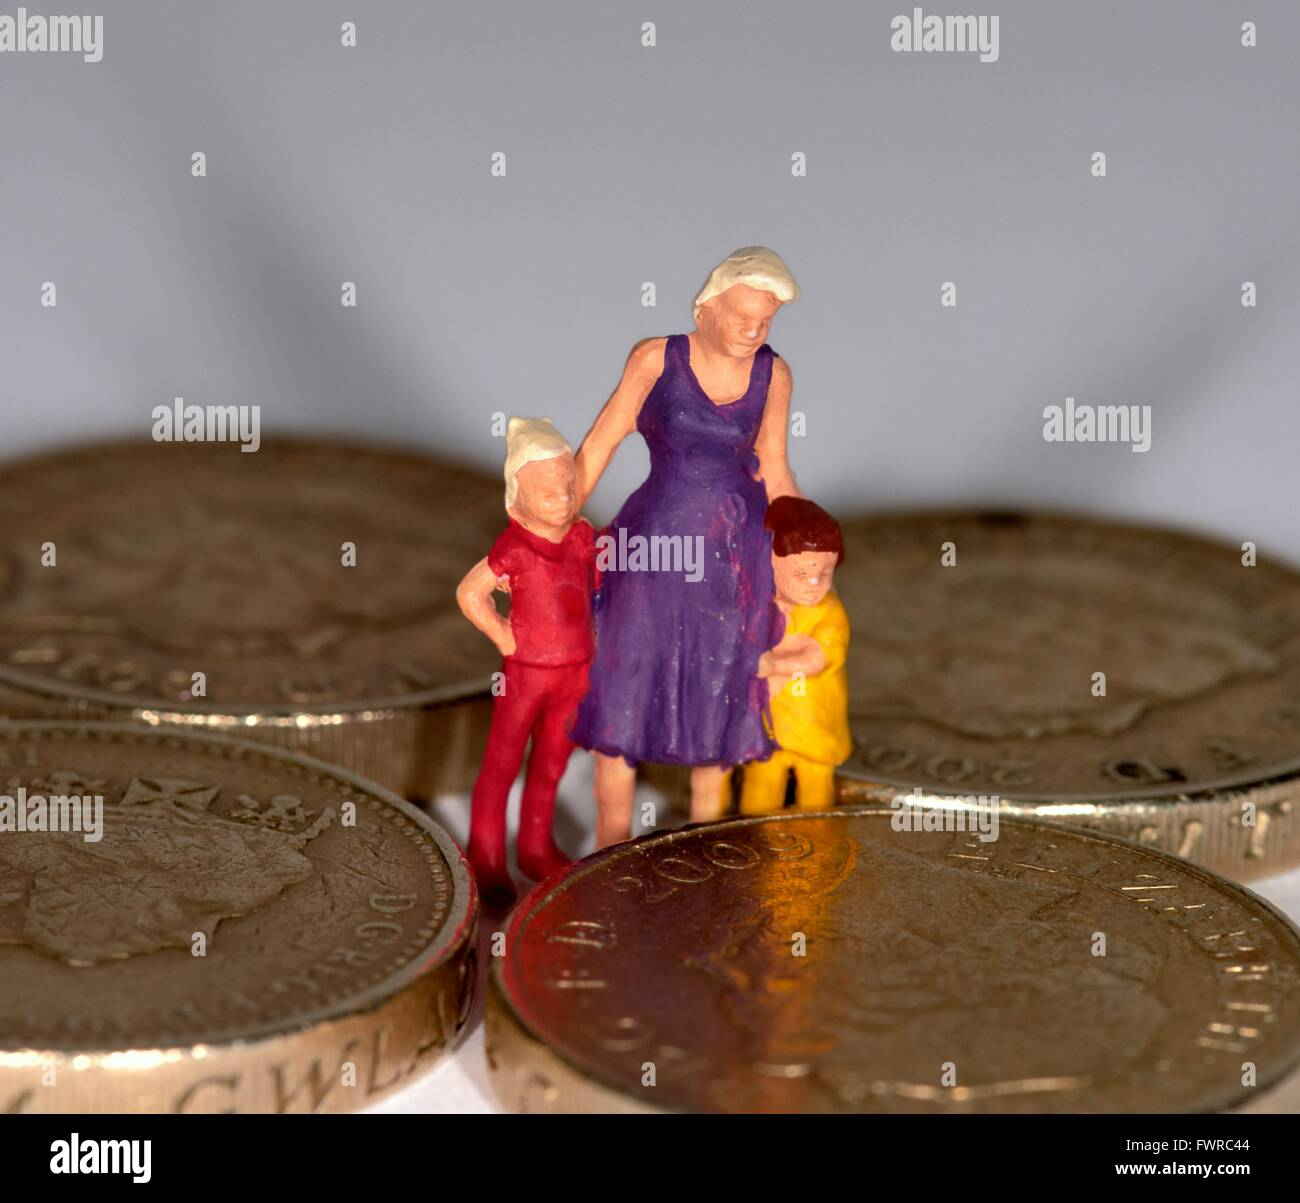 A miniature figurine woman with 2 children standing in between one pound coins - Stock Image